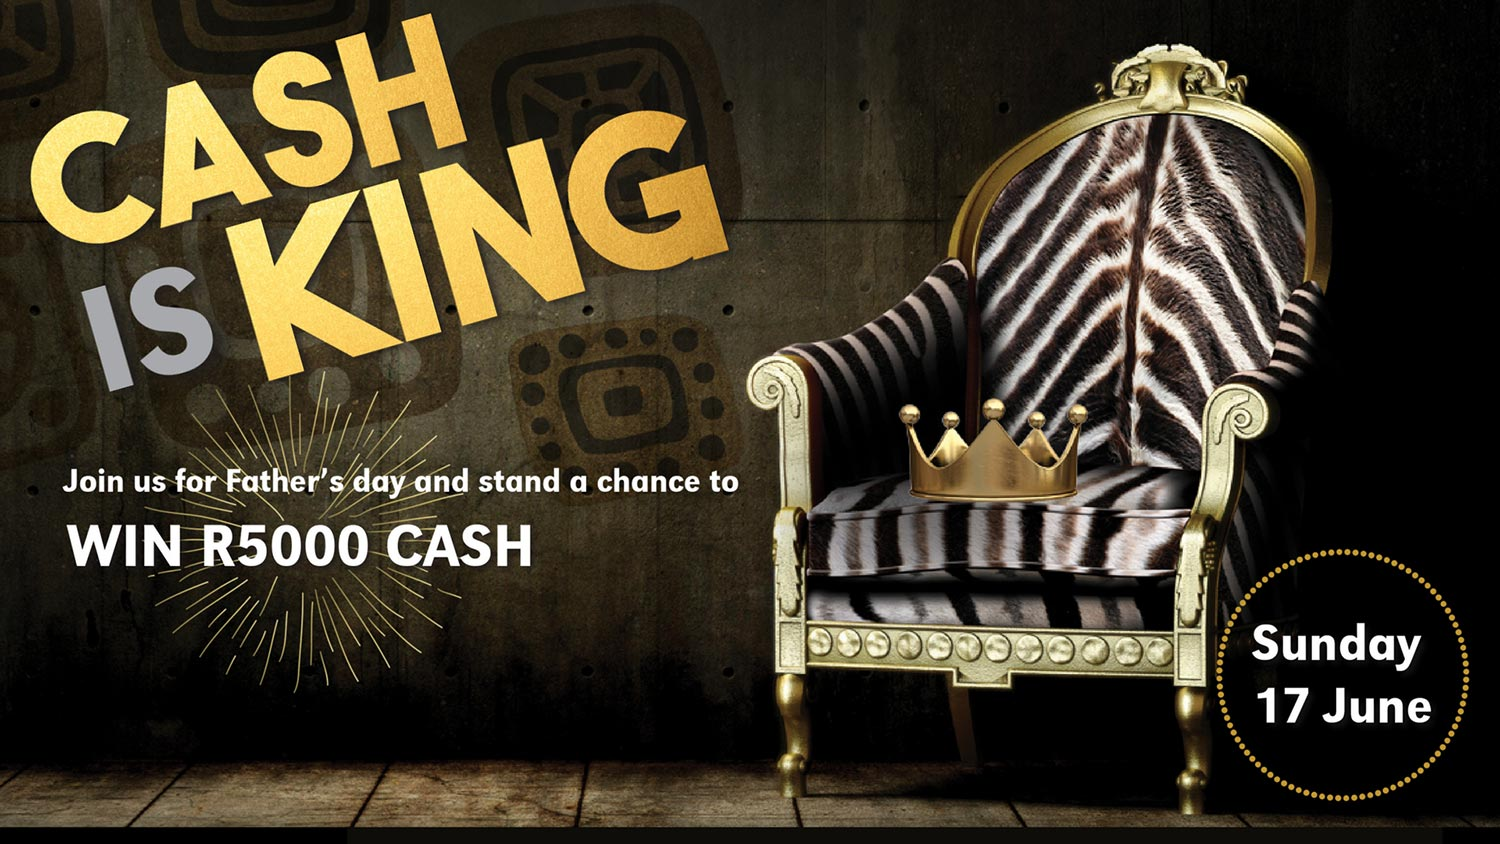 Cash Is King At Moyo This Coming Father's Day